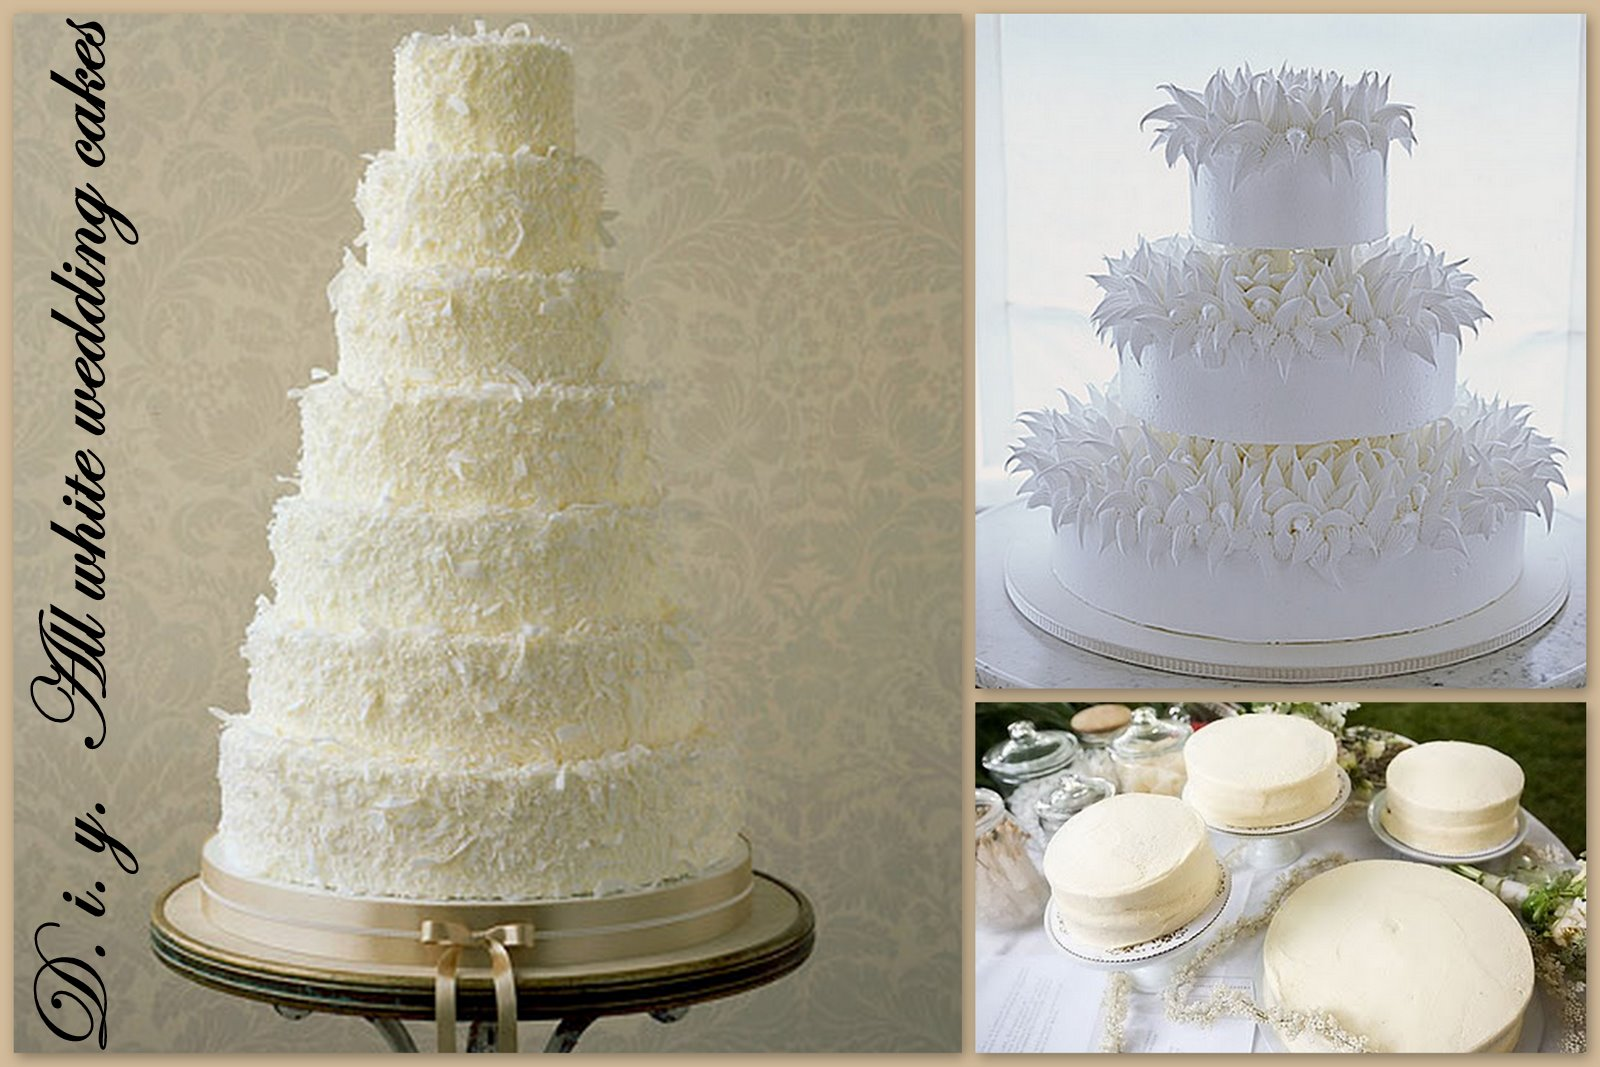 Get the Wedding Look For Less  Your All White Winterwonderland  All     Your All White Winterwonderland  All White Wedding Cakes